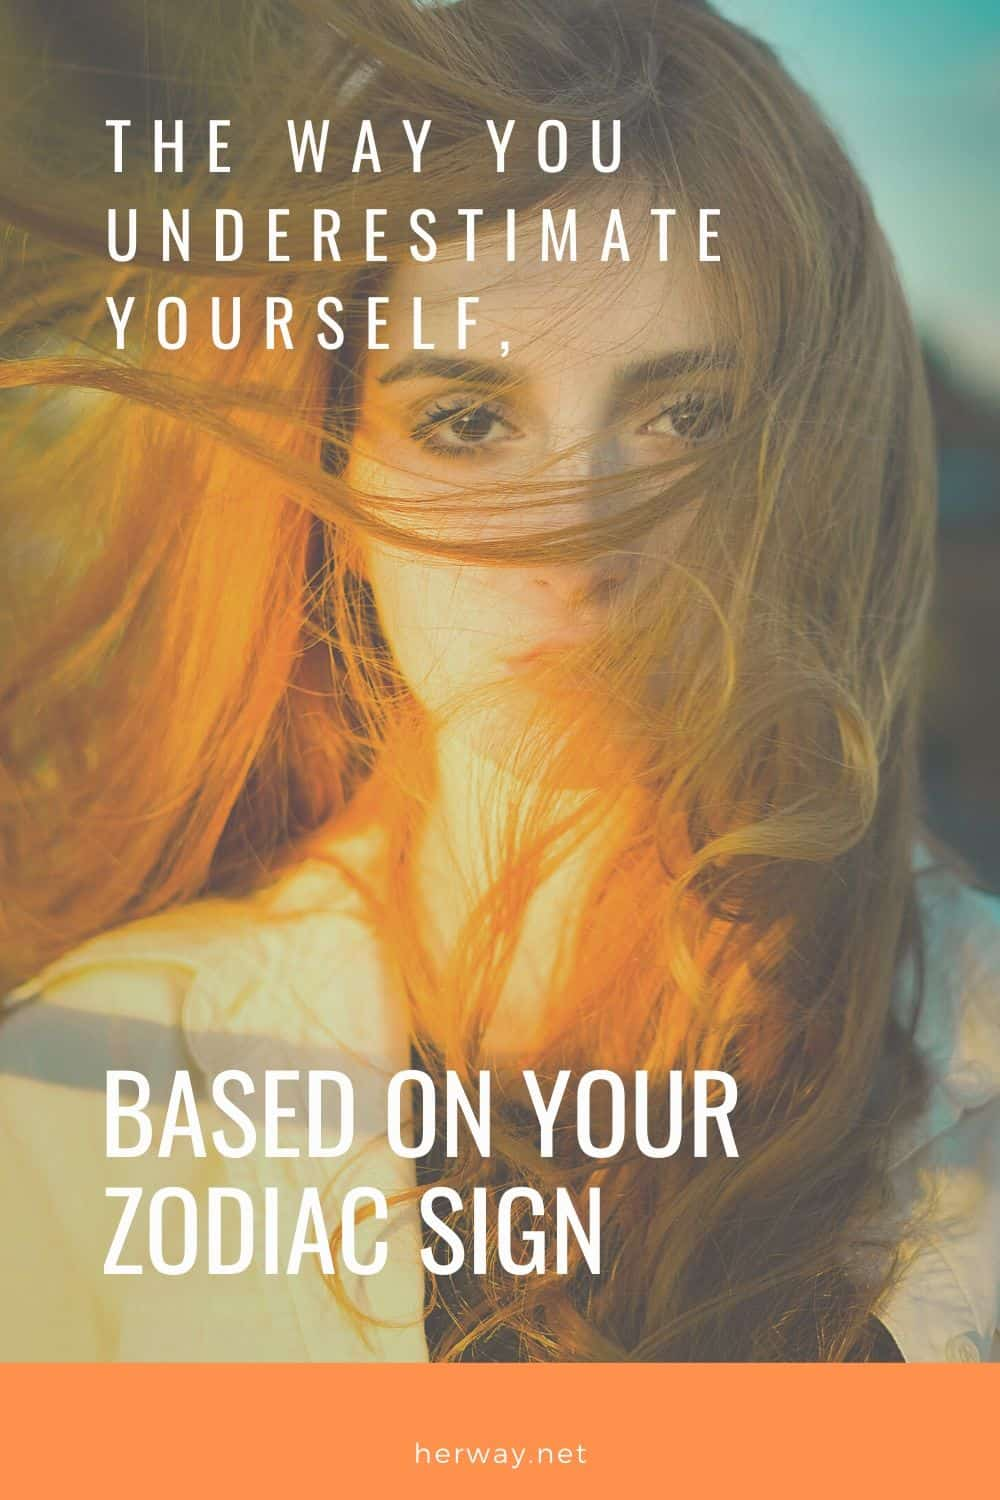 The Way You Underestimate Yourself, Based On Your Zodiac Sign